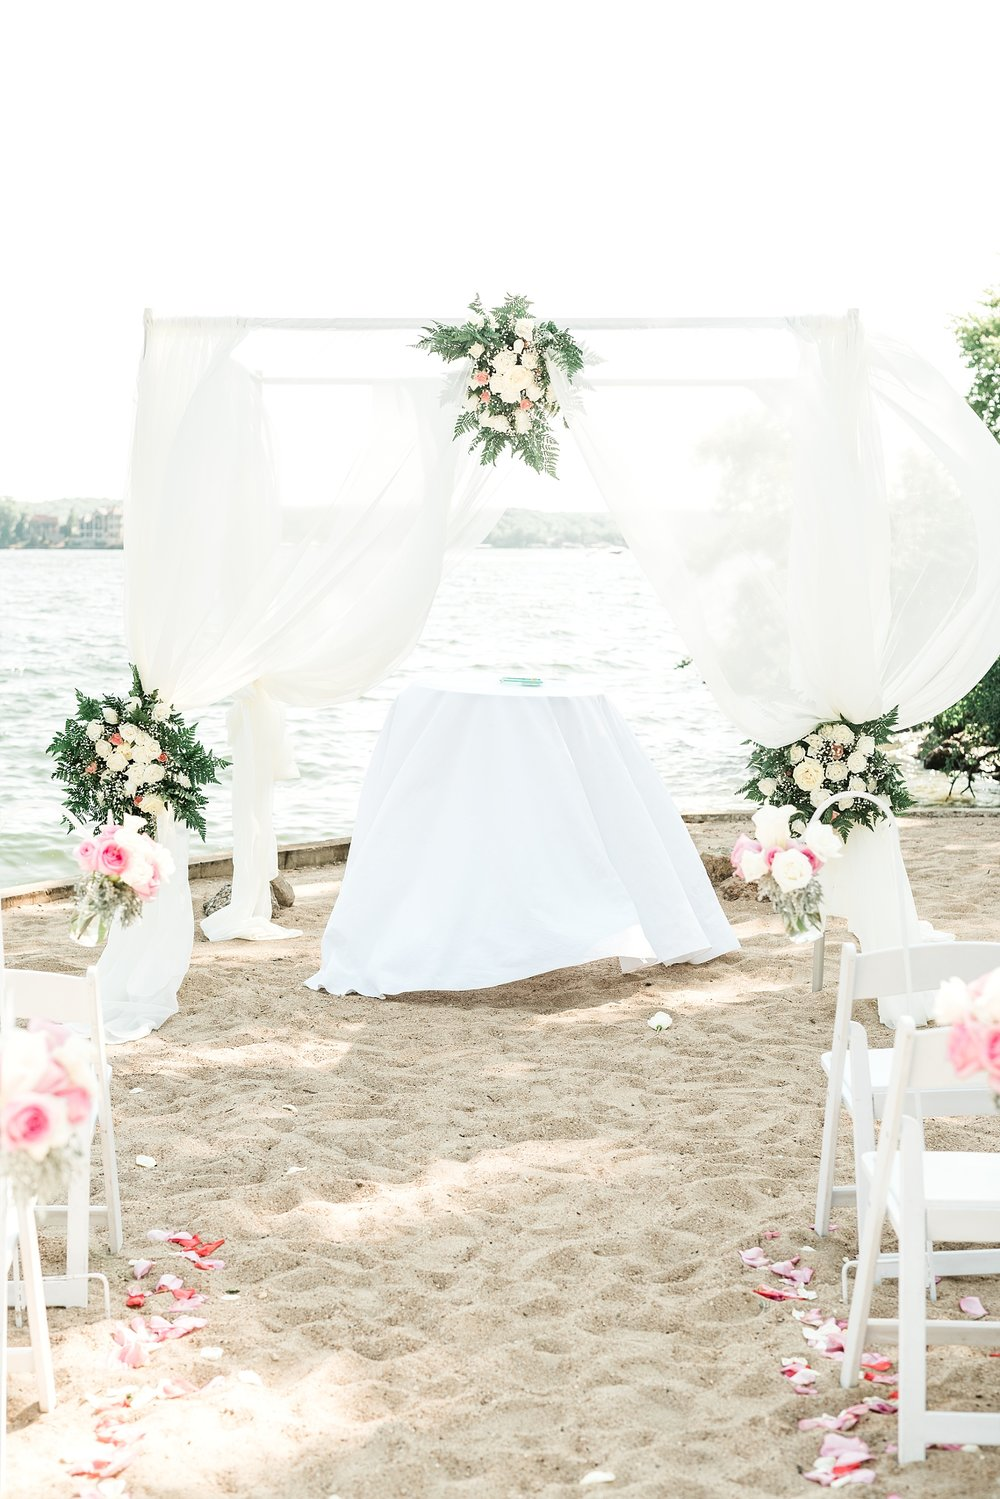 Beachside Sunset Wedding At Lodge Of Four Seasons At Lake Of The Ozarks By Kelsi Kliethermes Photography_0012.jpg